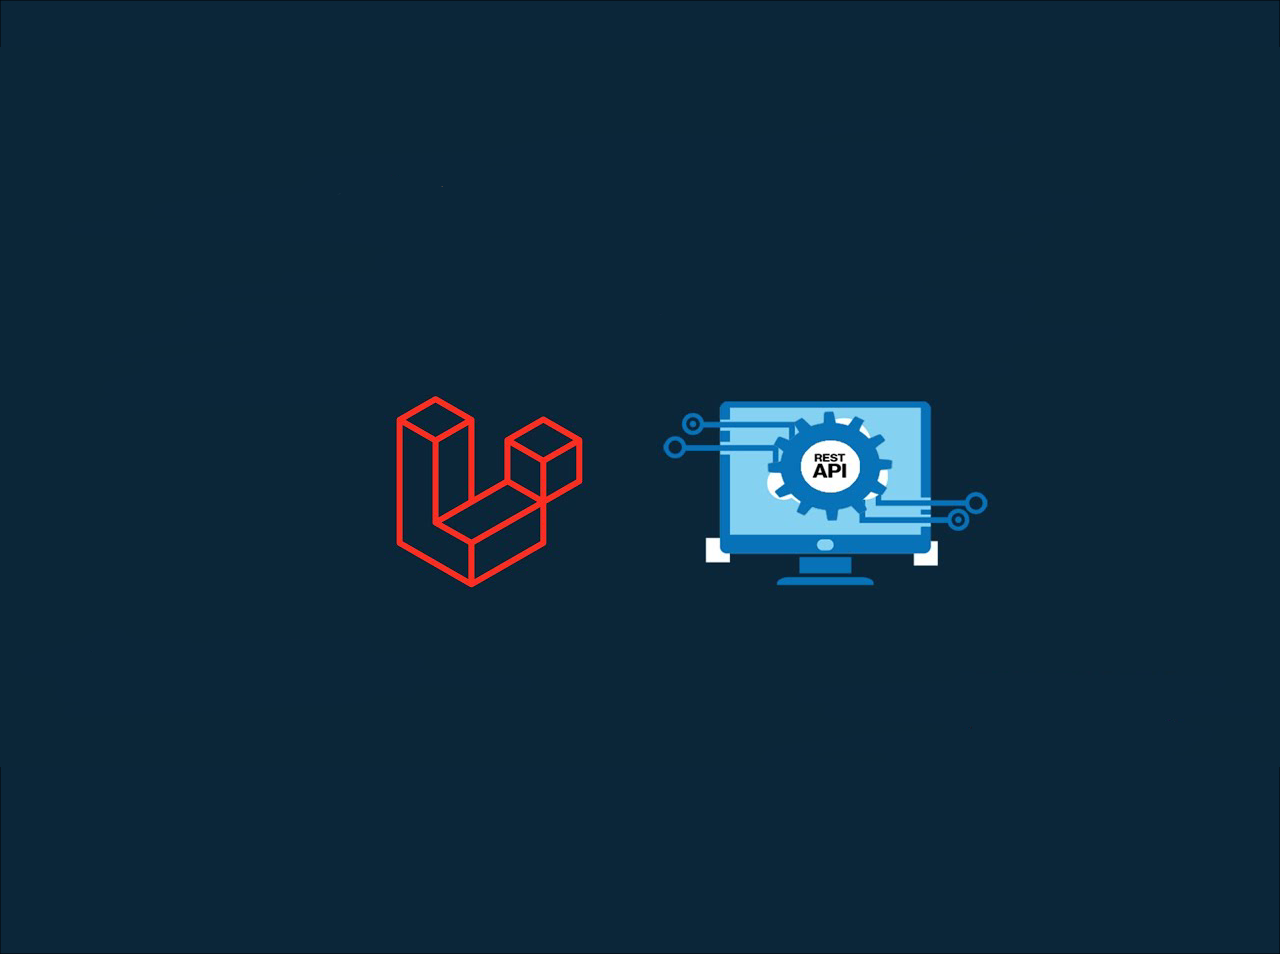 Build a Product Review REST API with Laravel